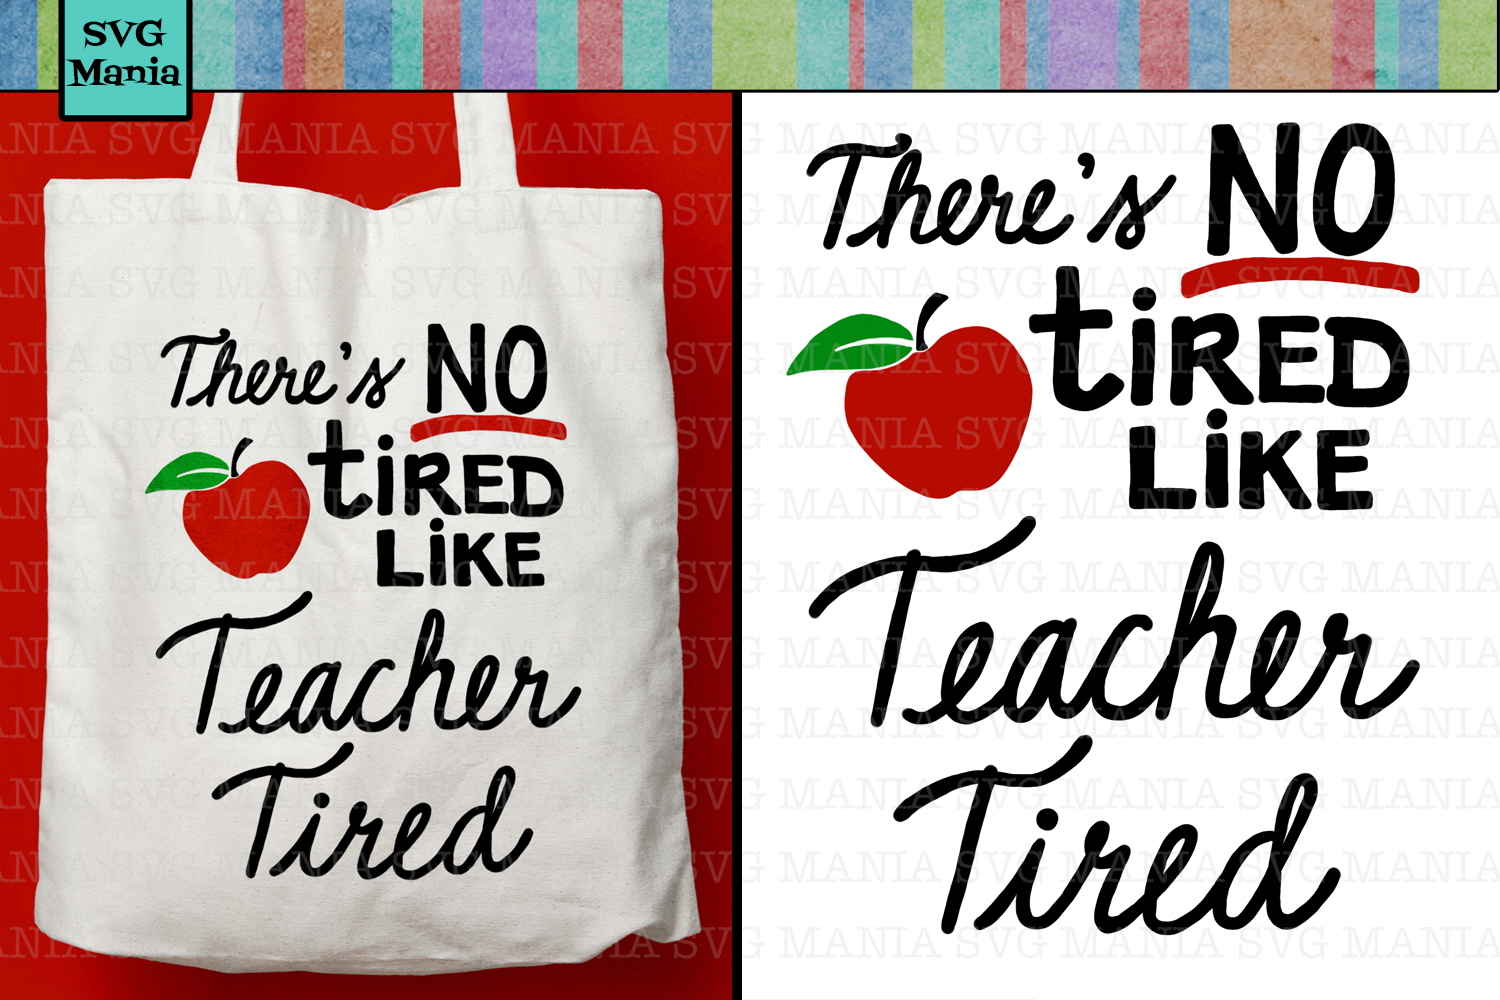 Teacher Quote SVG, Funny Teacher SVG, SVG Teacher Saying example image 1